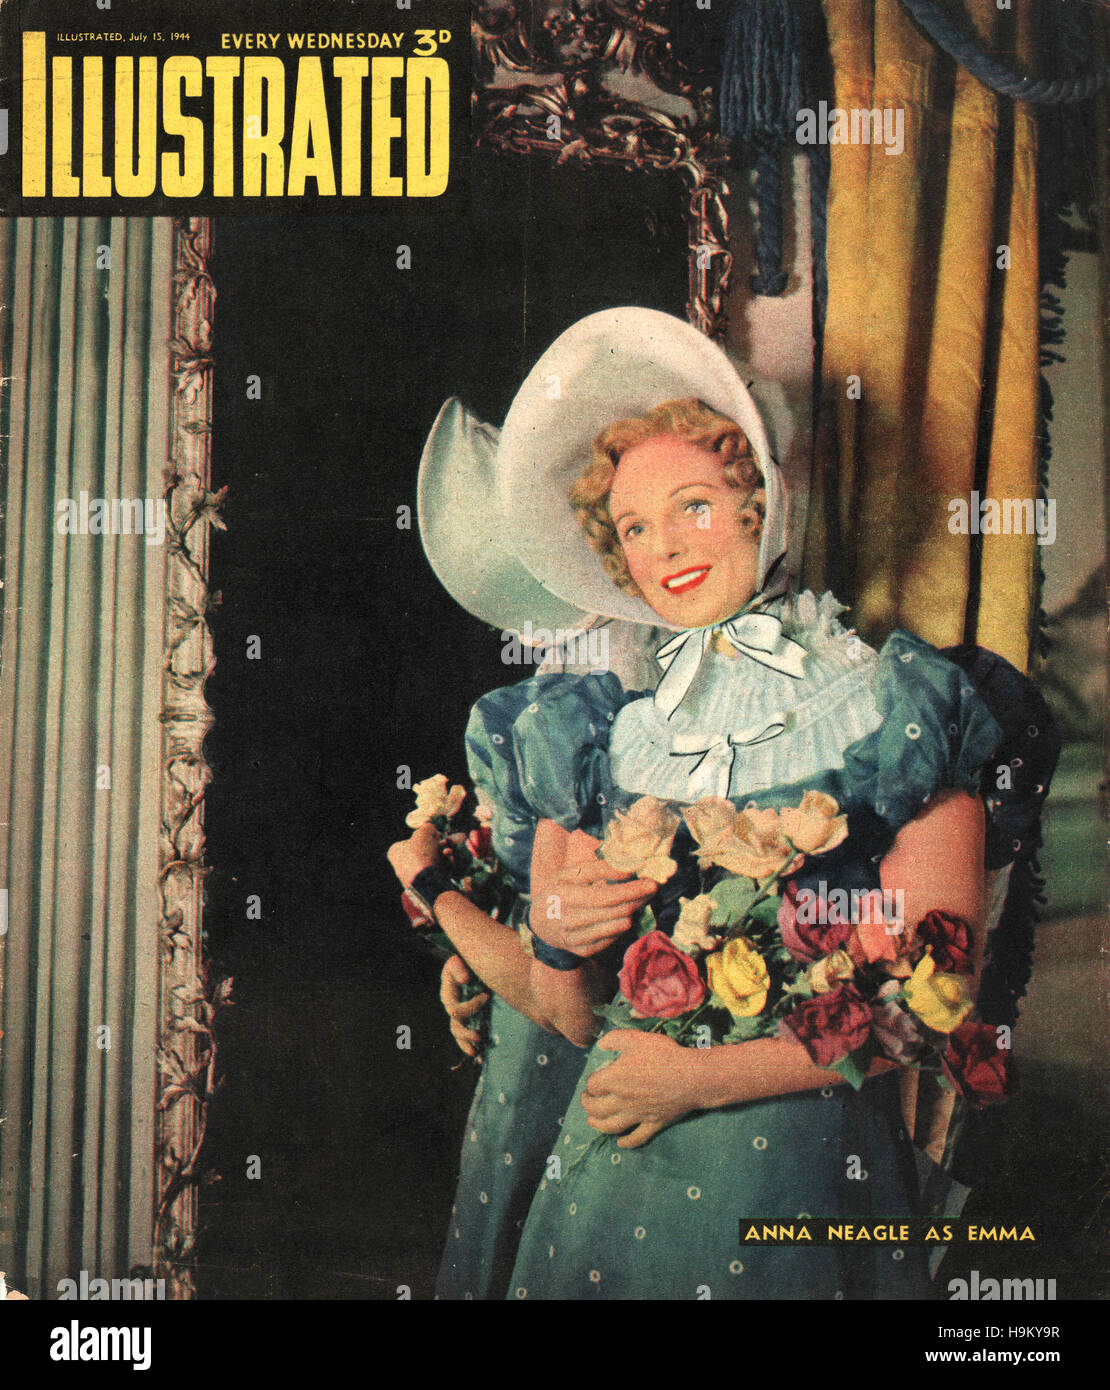 1944 Illustrated Actress Anna Neagle - Stock Image